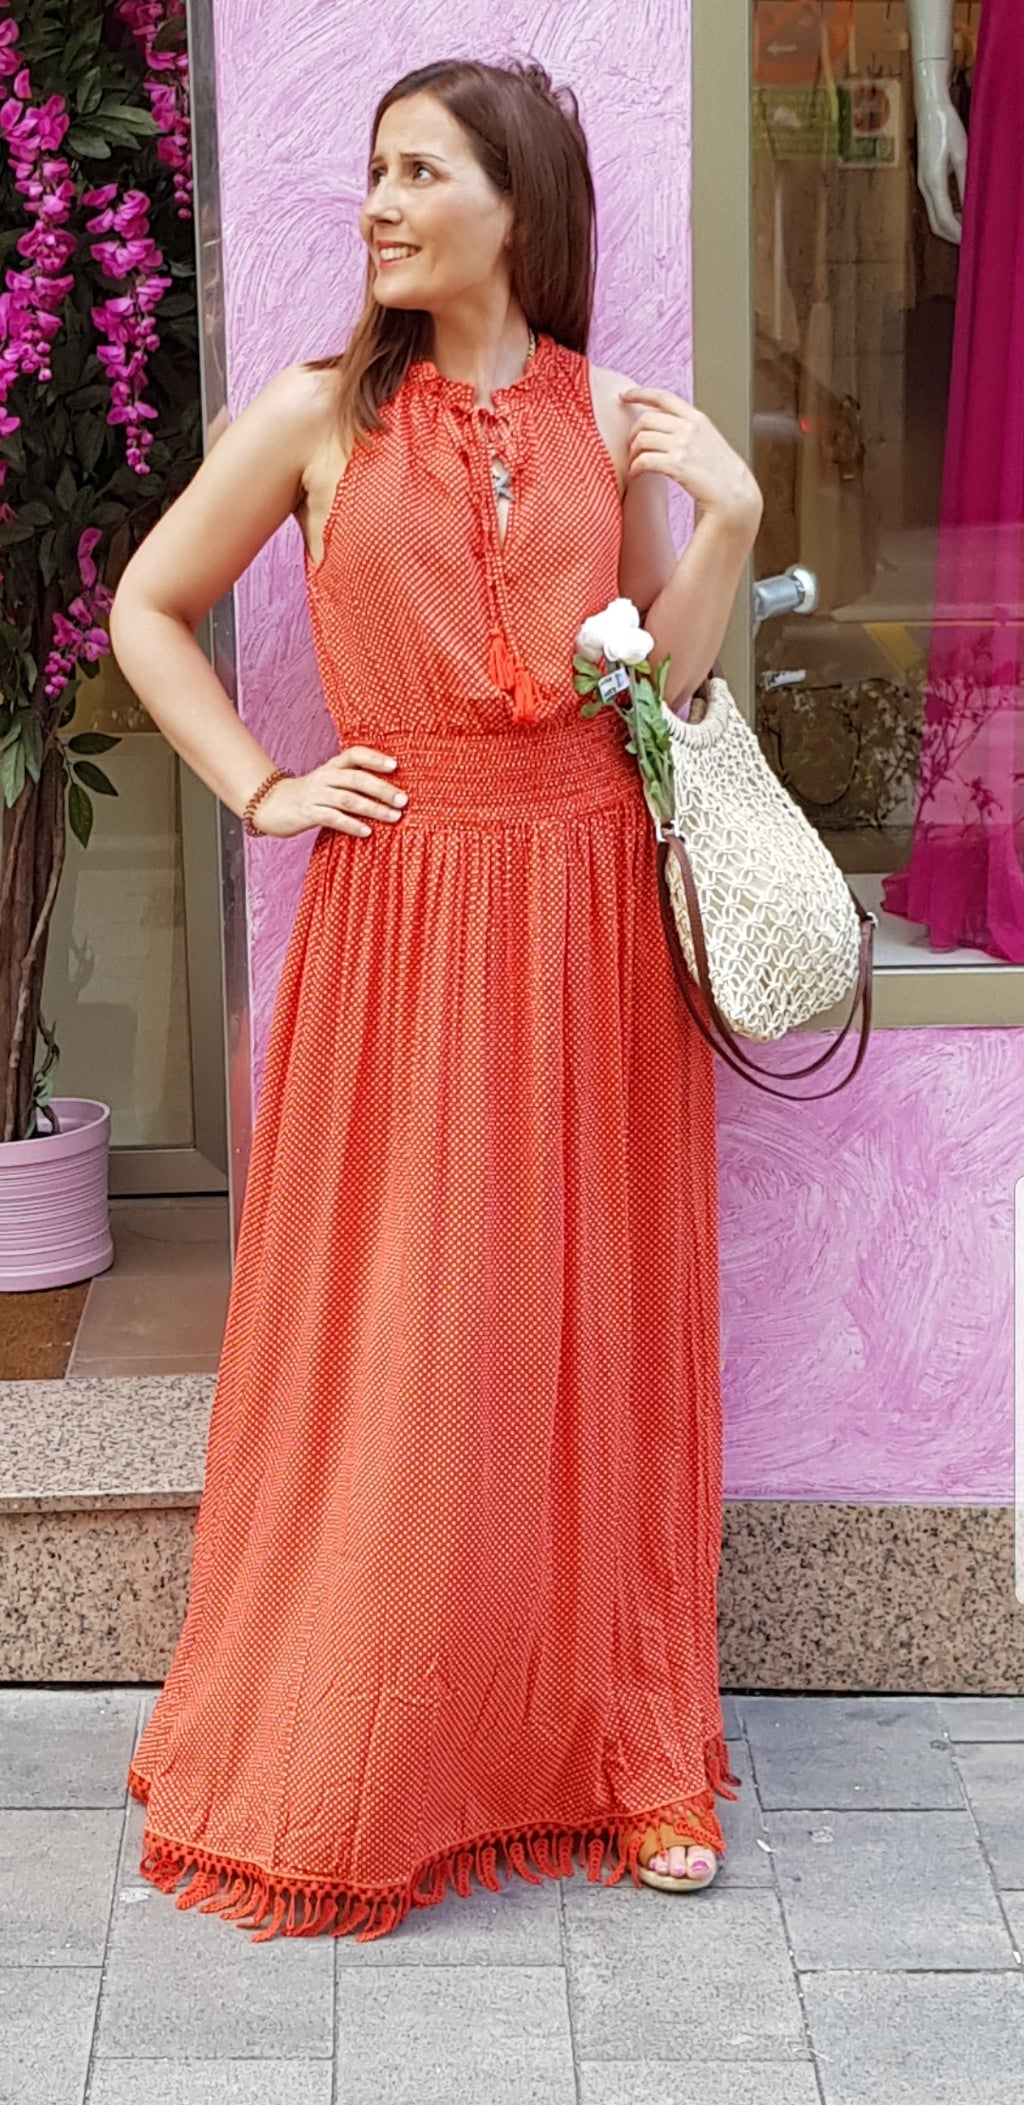 Vestido Orange Molly Bracken - Cloe Boutique